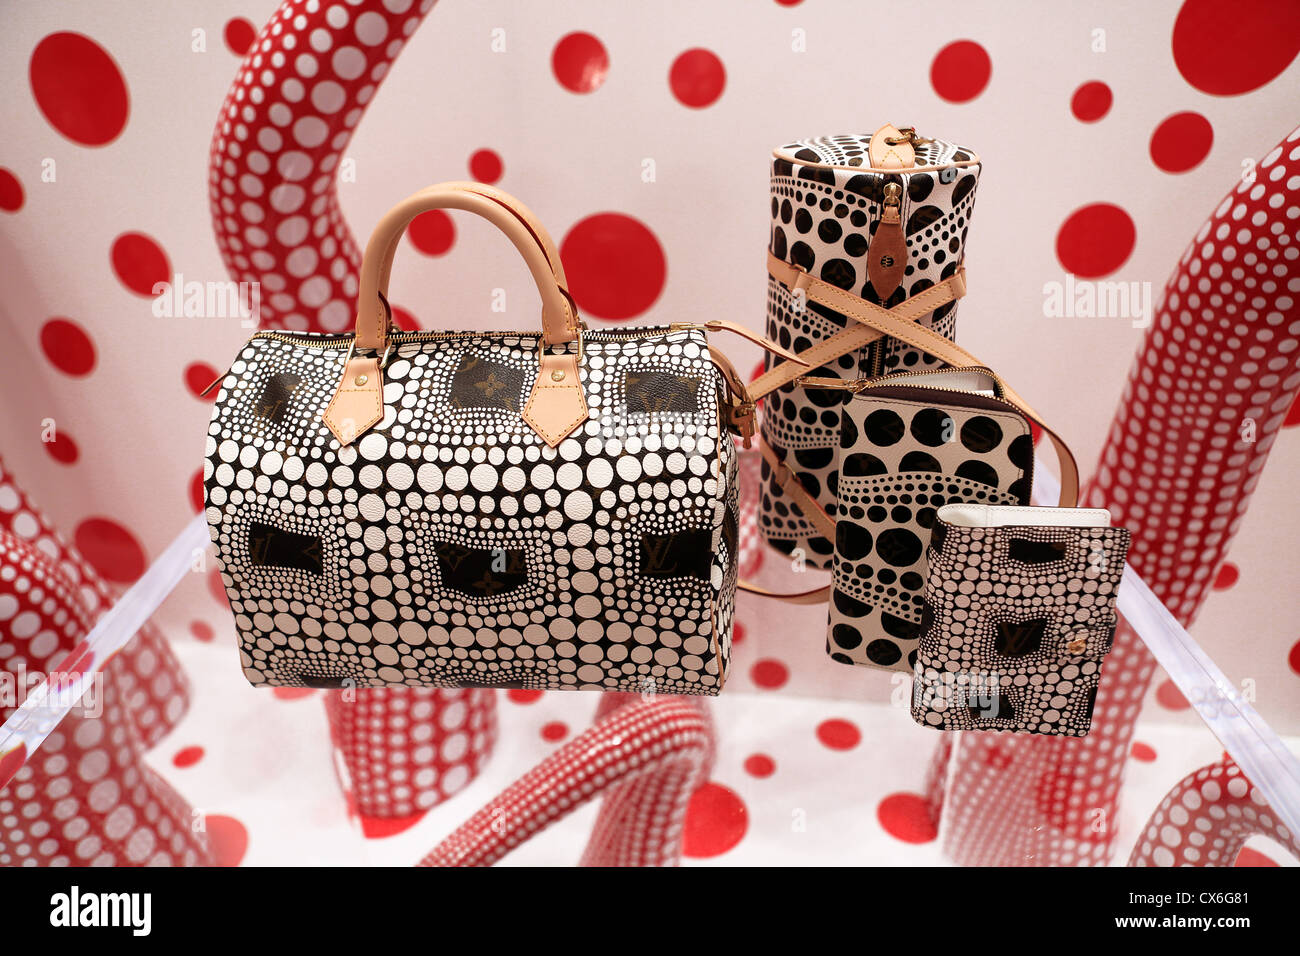 louis vuitton bag stock photos louis vuitton bag stock images handbags in louis vuitton store at ion orchard with collection by japanese artist yayoi kusama